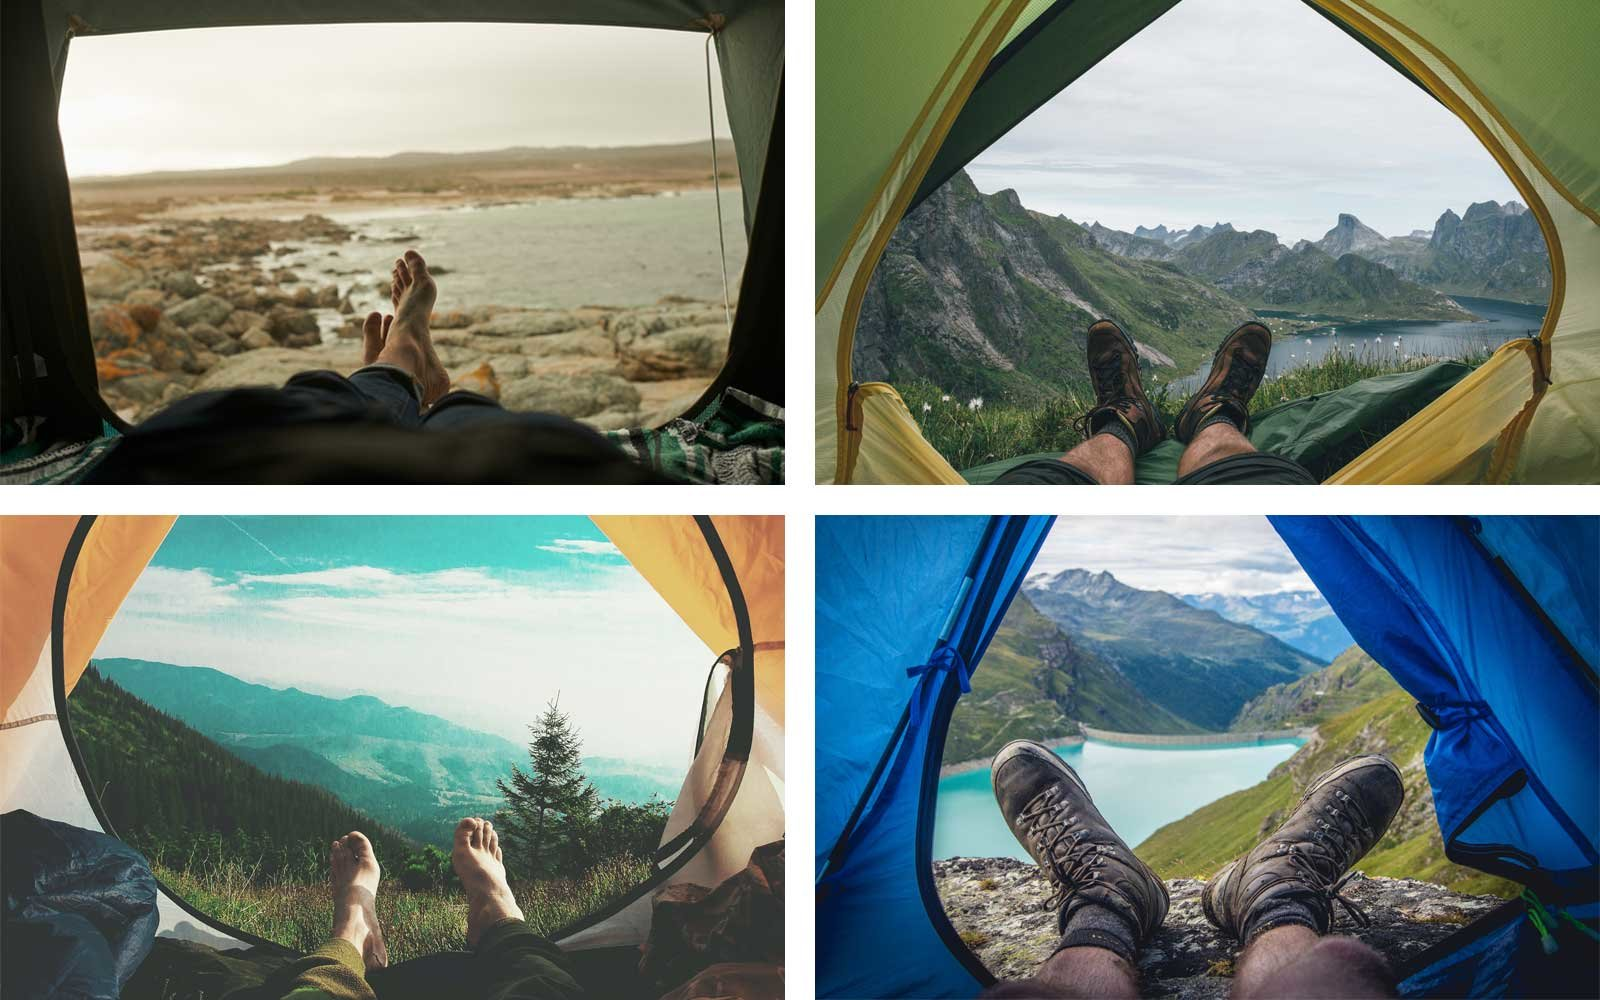 Feet and Camping Tent View - a popular image to capture